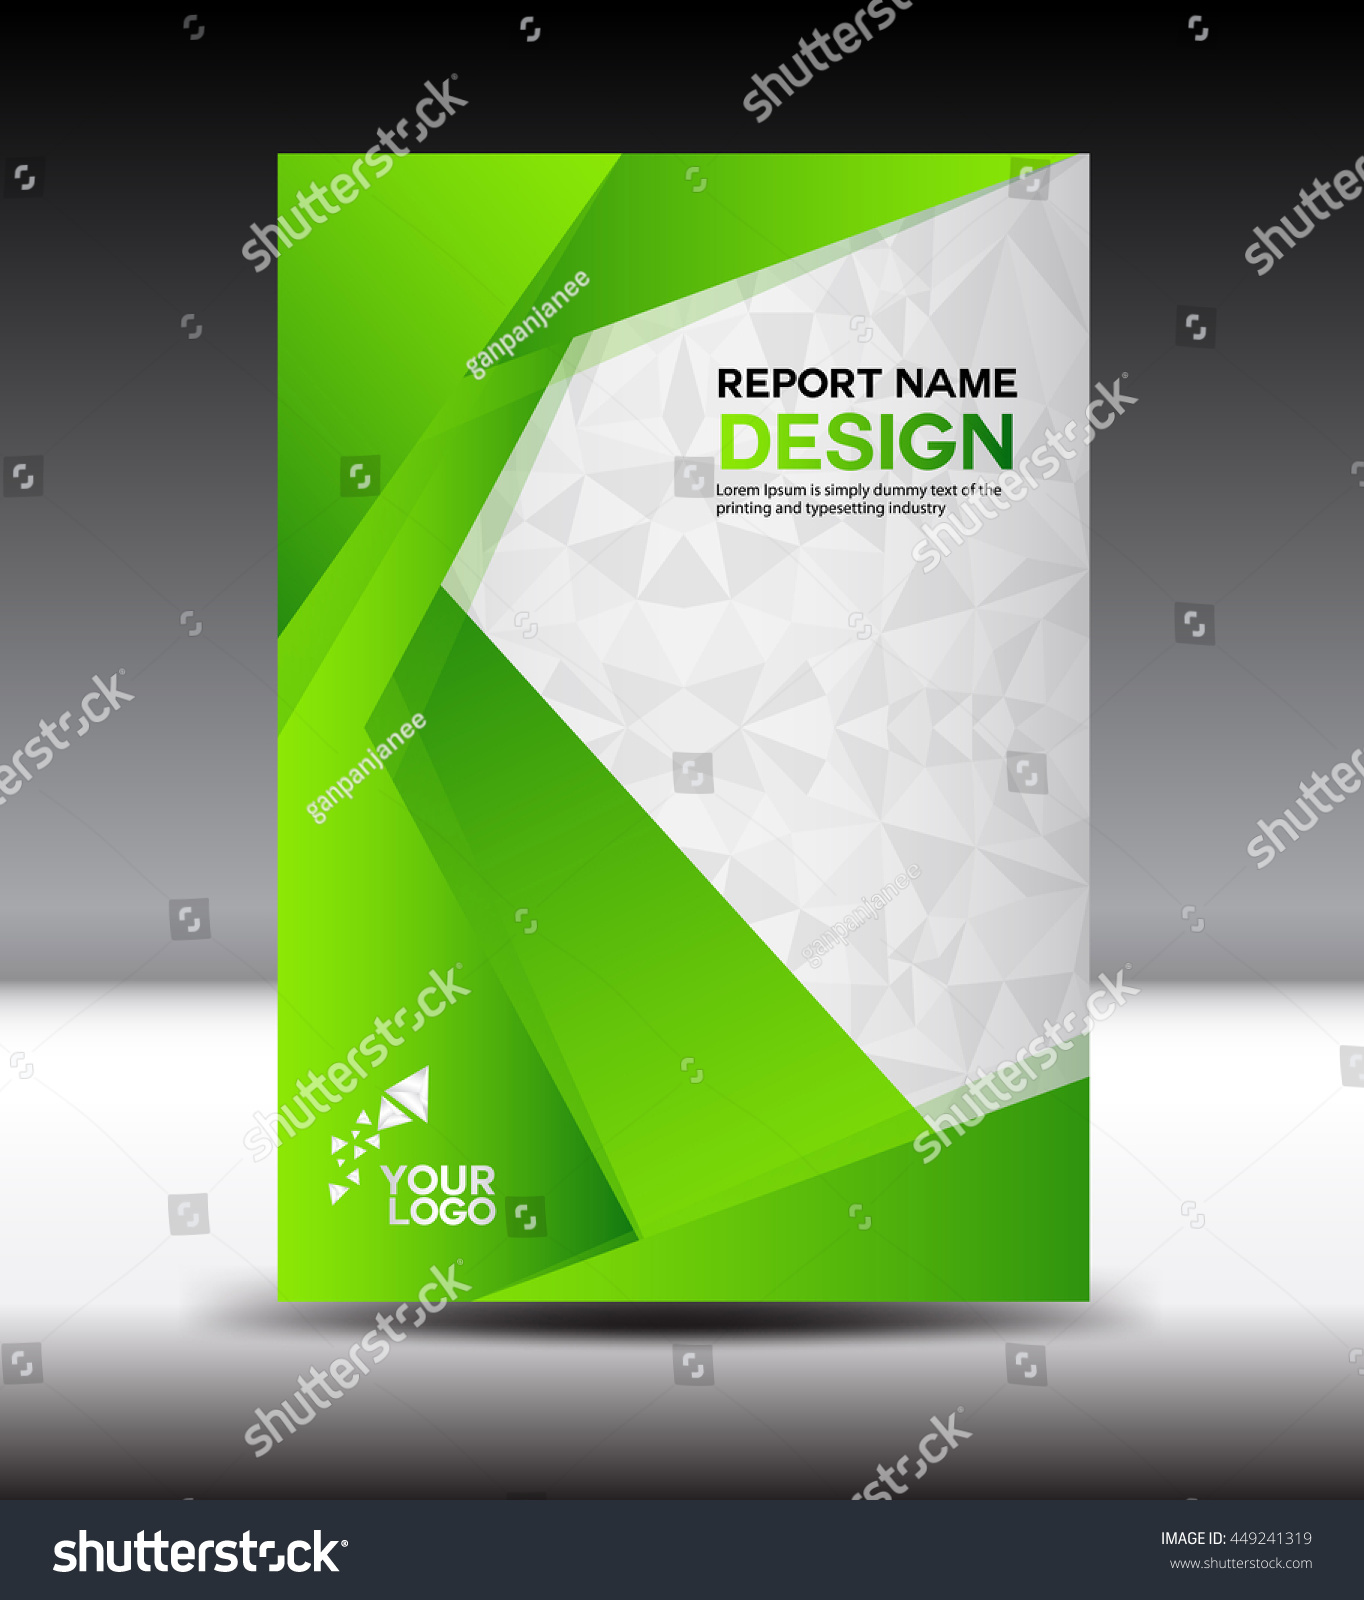 Purity Cookbook Green Cover : Green cover design annual report vector 스톡 벡터